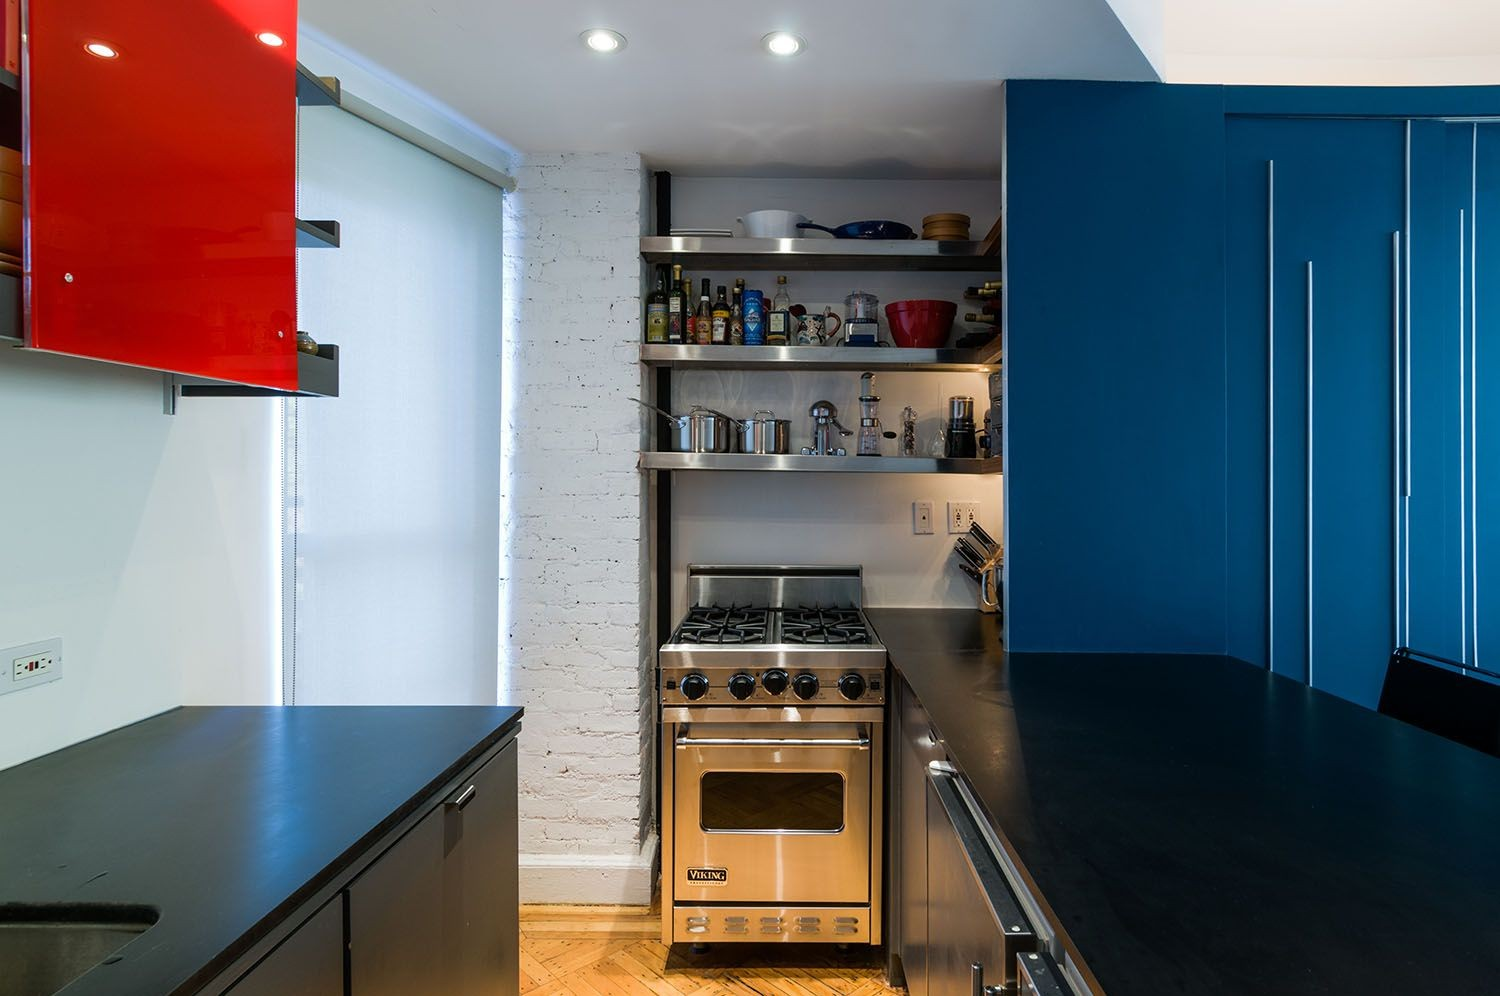 How To Choose Compact Appliances For A Small Kitchen